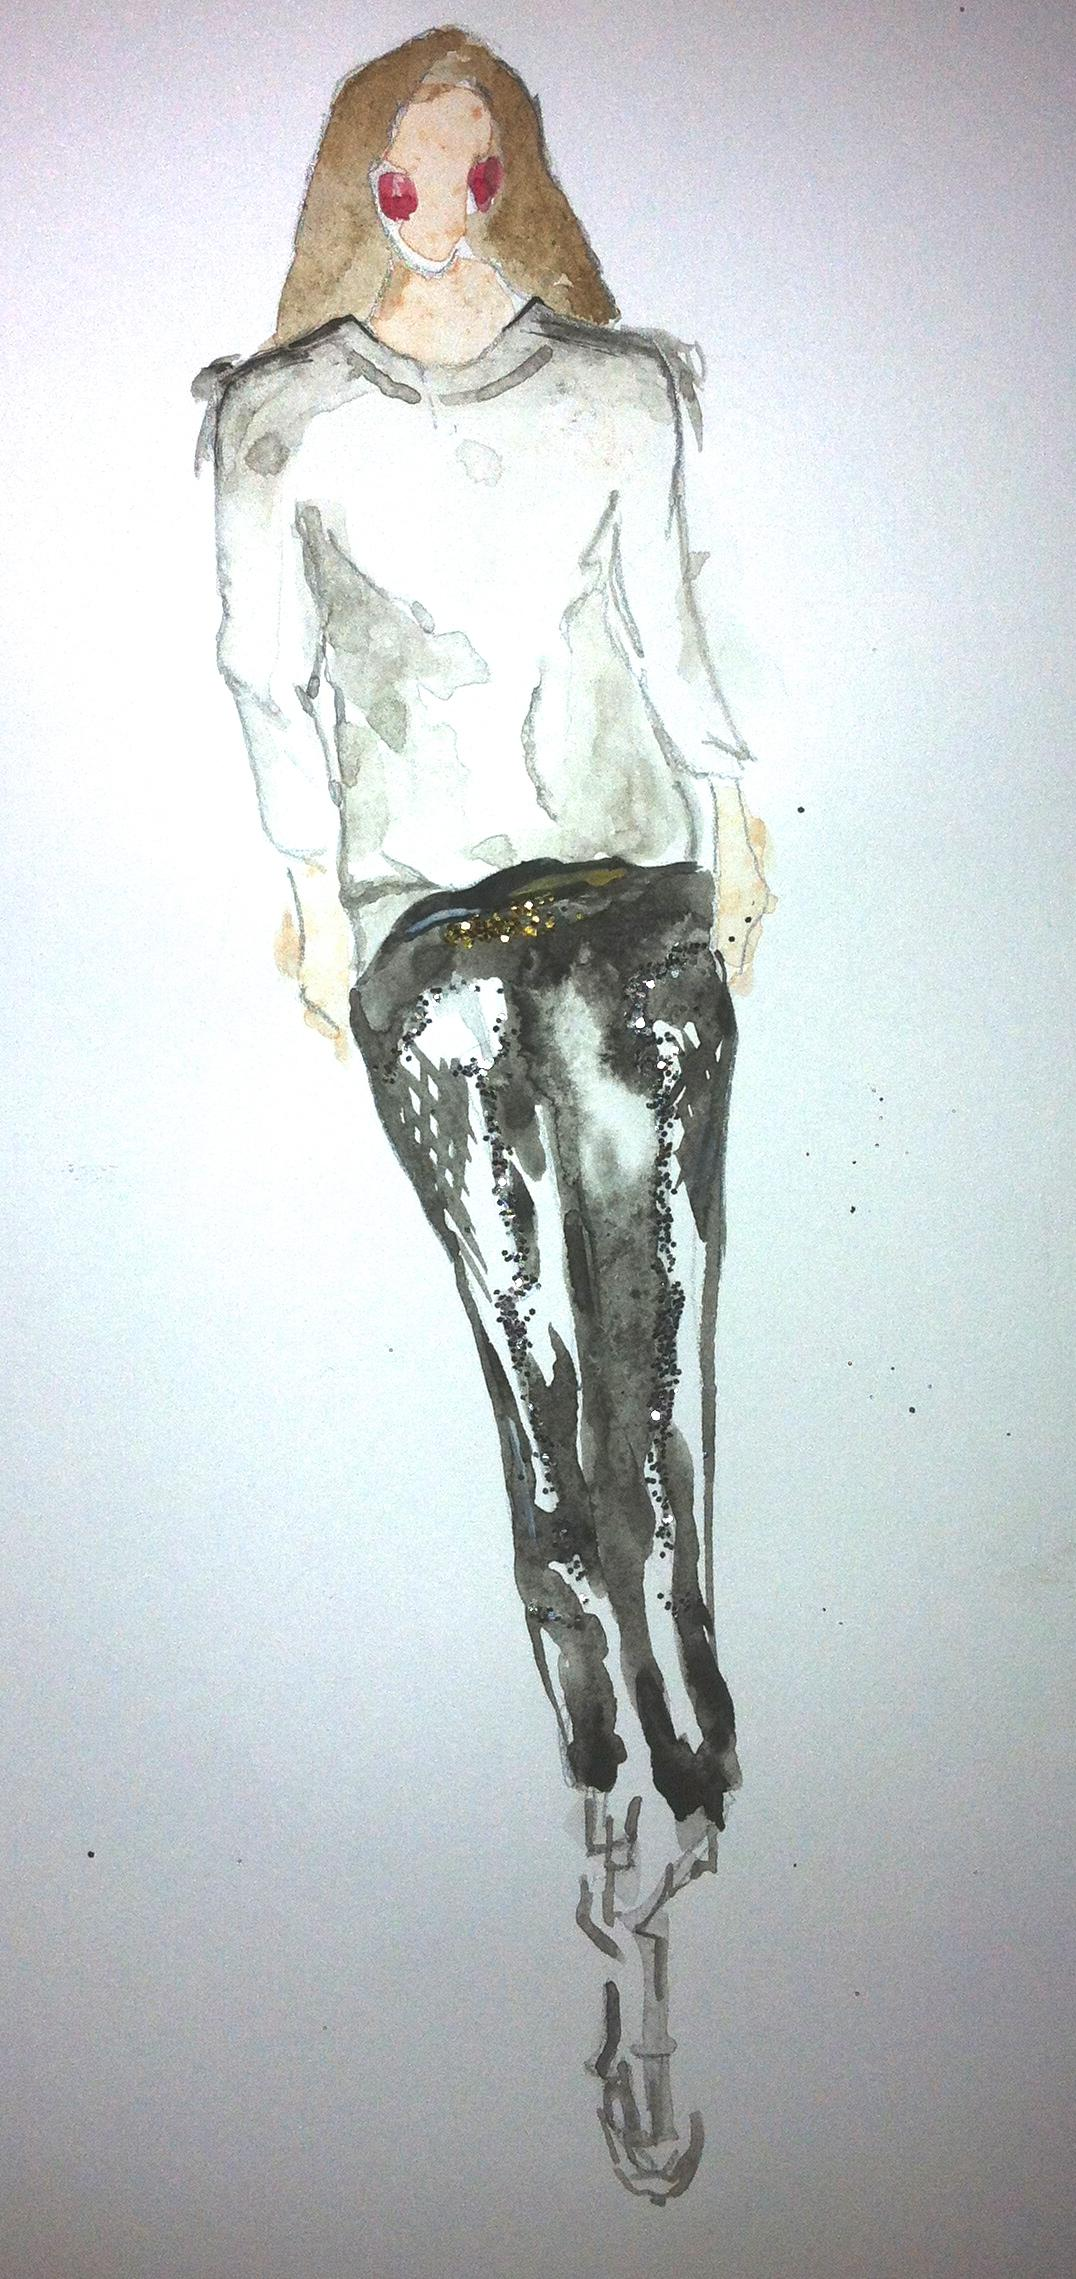 Embellished  : : Modern Androgyny  - image 13 - student project